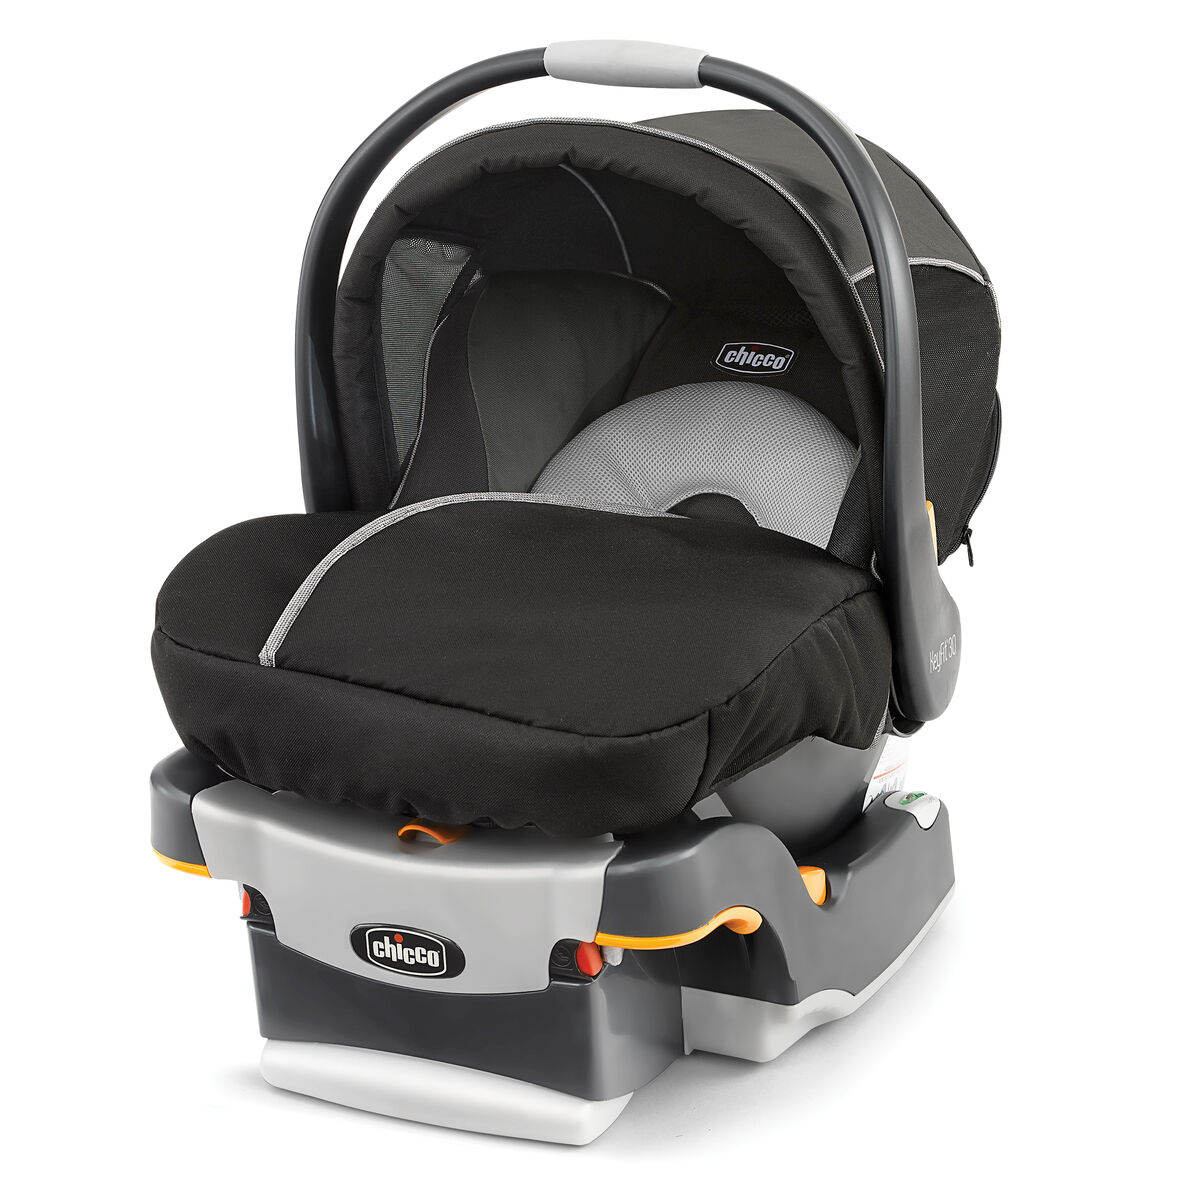 chicco chicco keyfit magic infant car seat coal. Black Bedroom Furniture Sets. Home Design Ideas